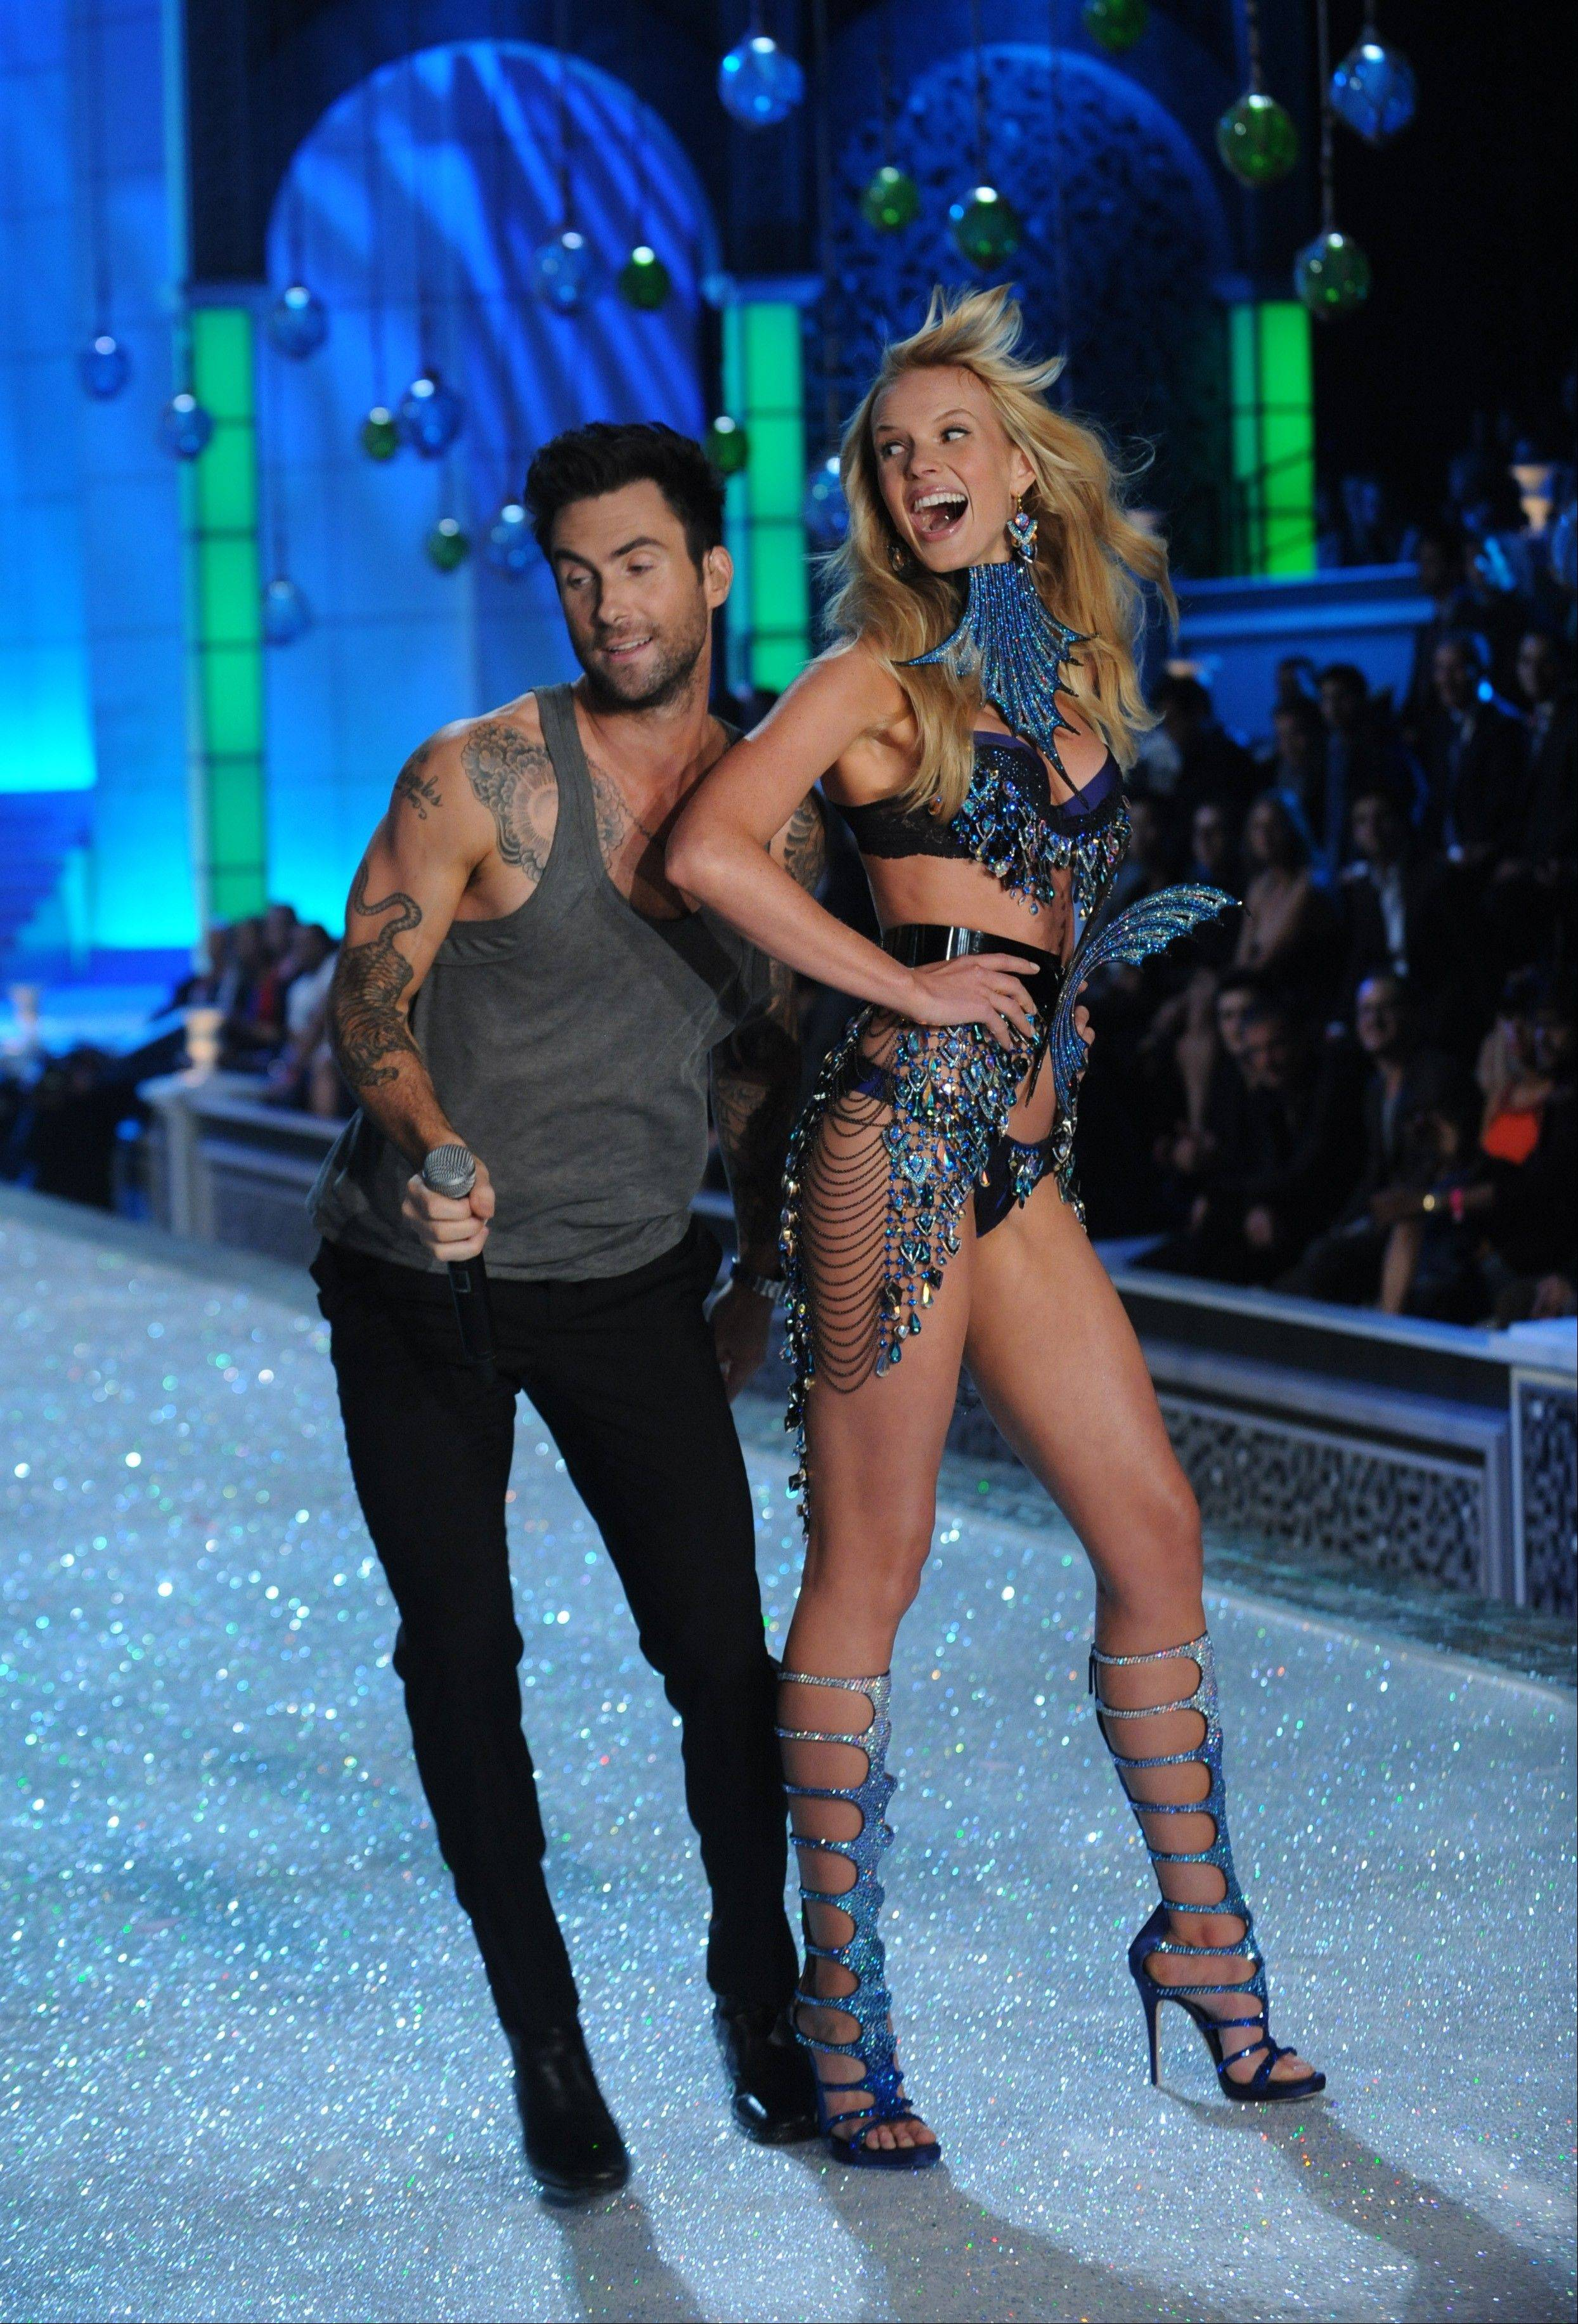 Adam Levine performs with a model during the Victoria's Secret fashion show in New York, Wednesday.